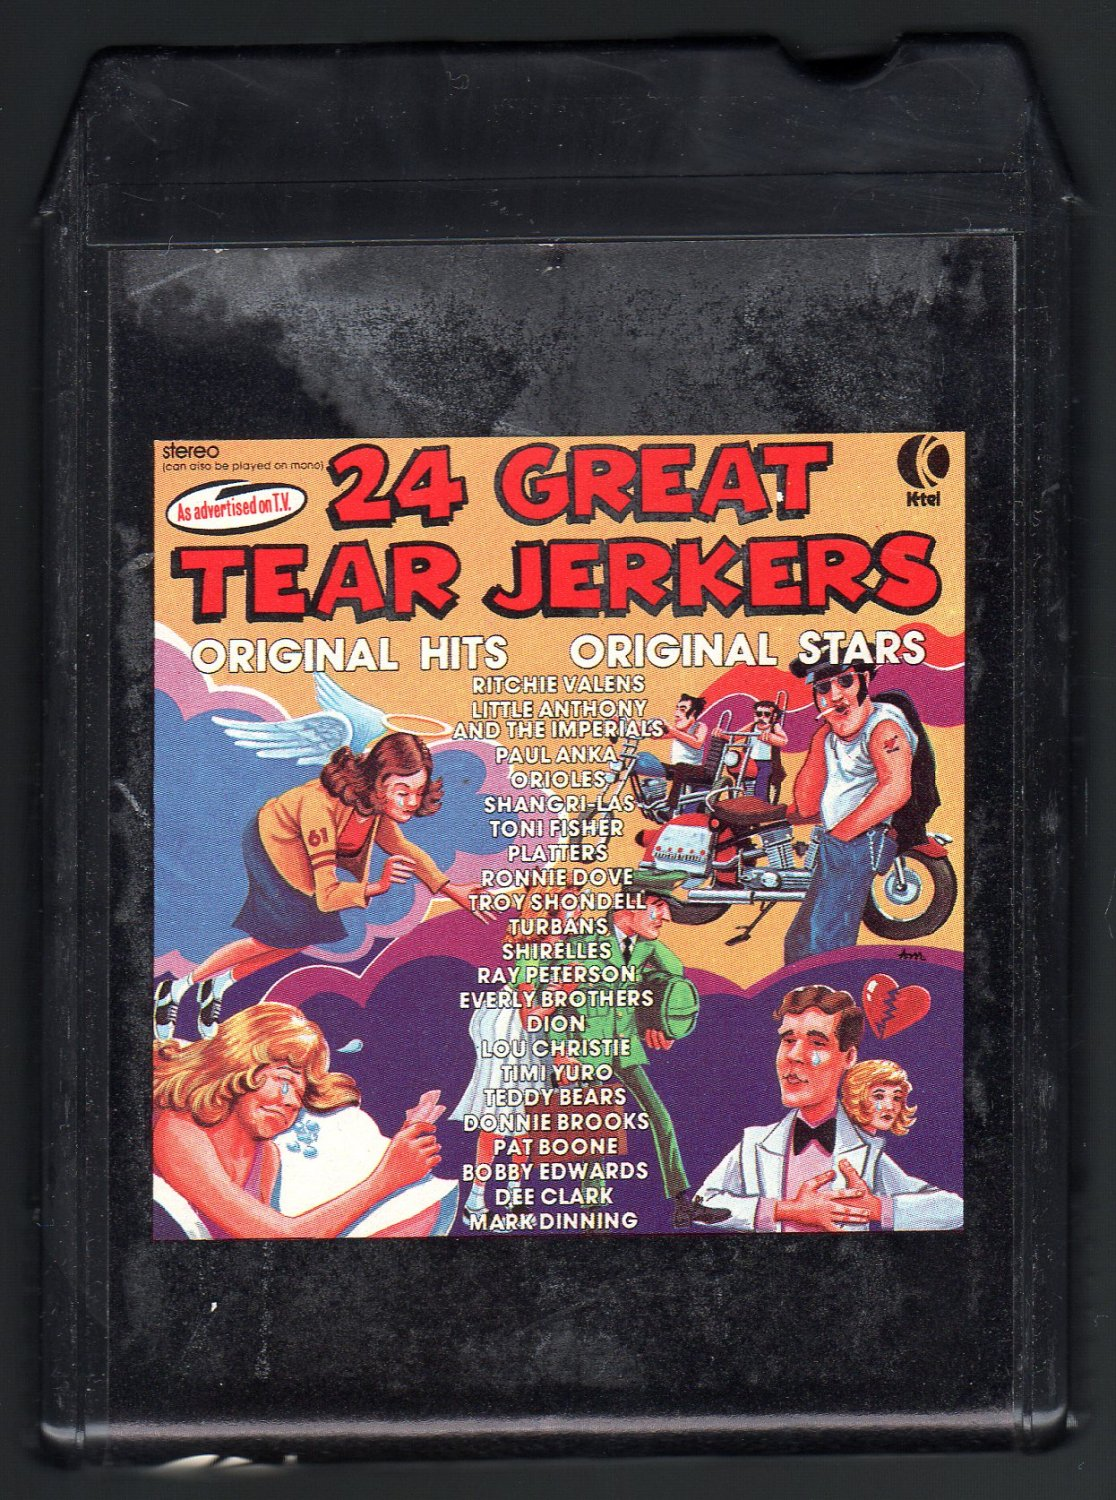 24 Great Tear Jerkers - 24 Original Hits 24 Original Stars 1975 KTEL A32 8-TRACK TAPE